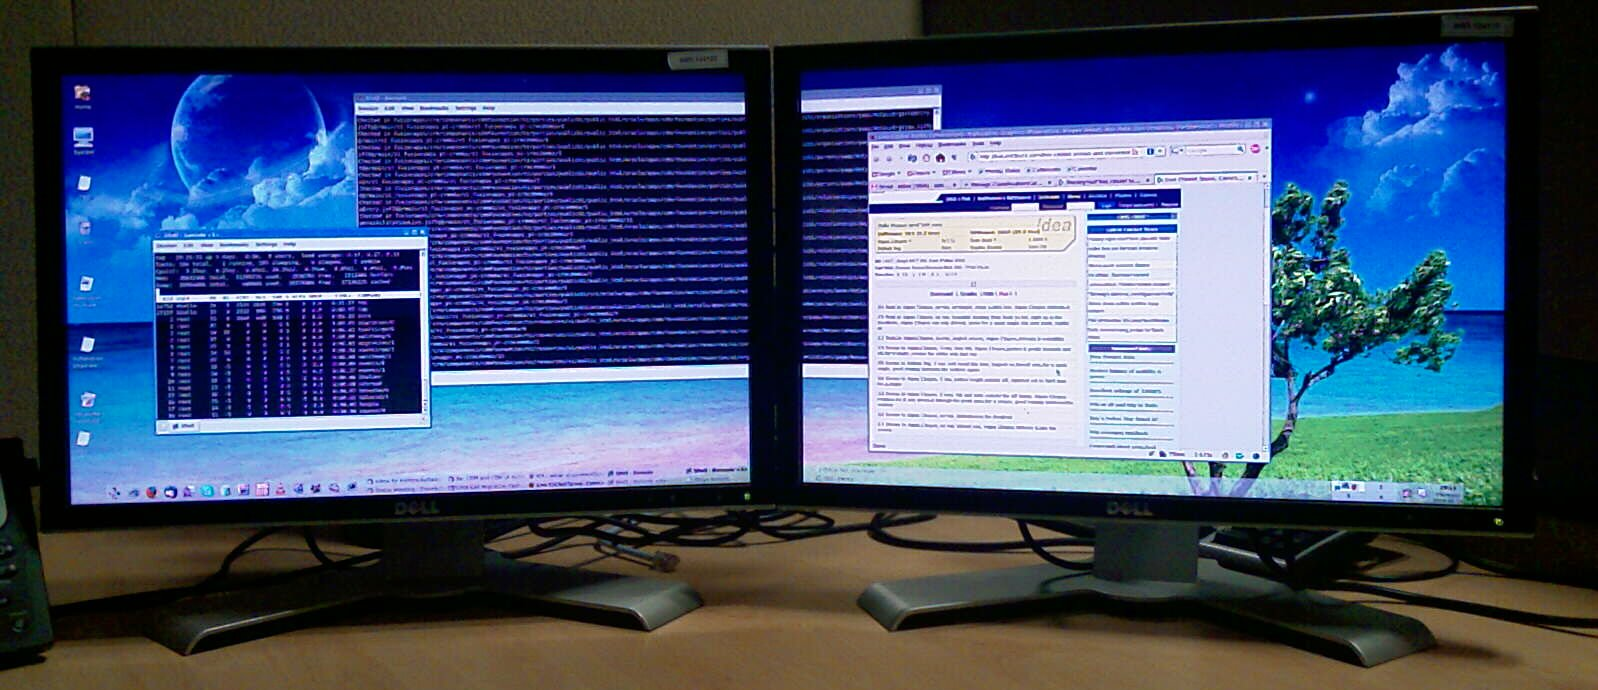 Make Your Work Easier: Use Dual Monitors | Yale School of Medicine